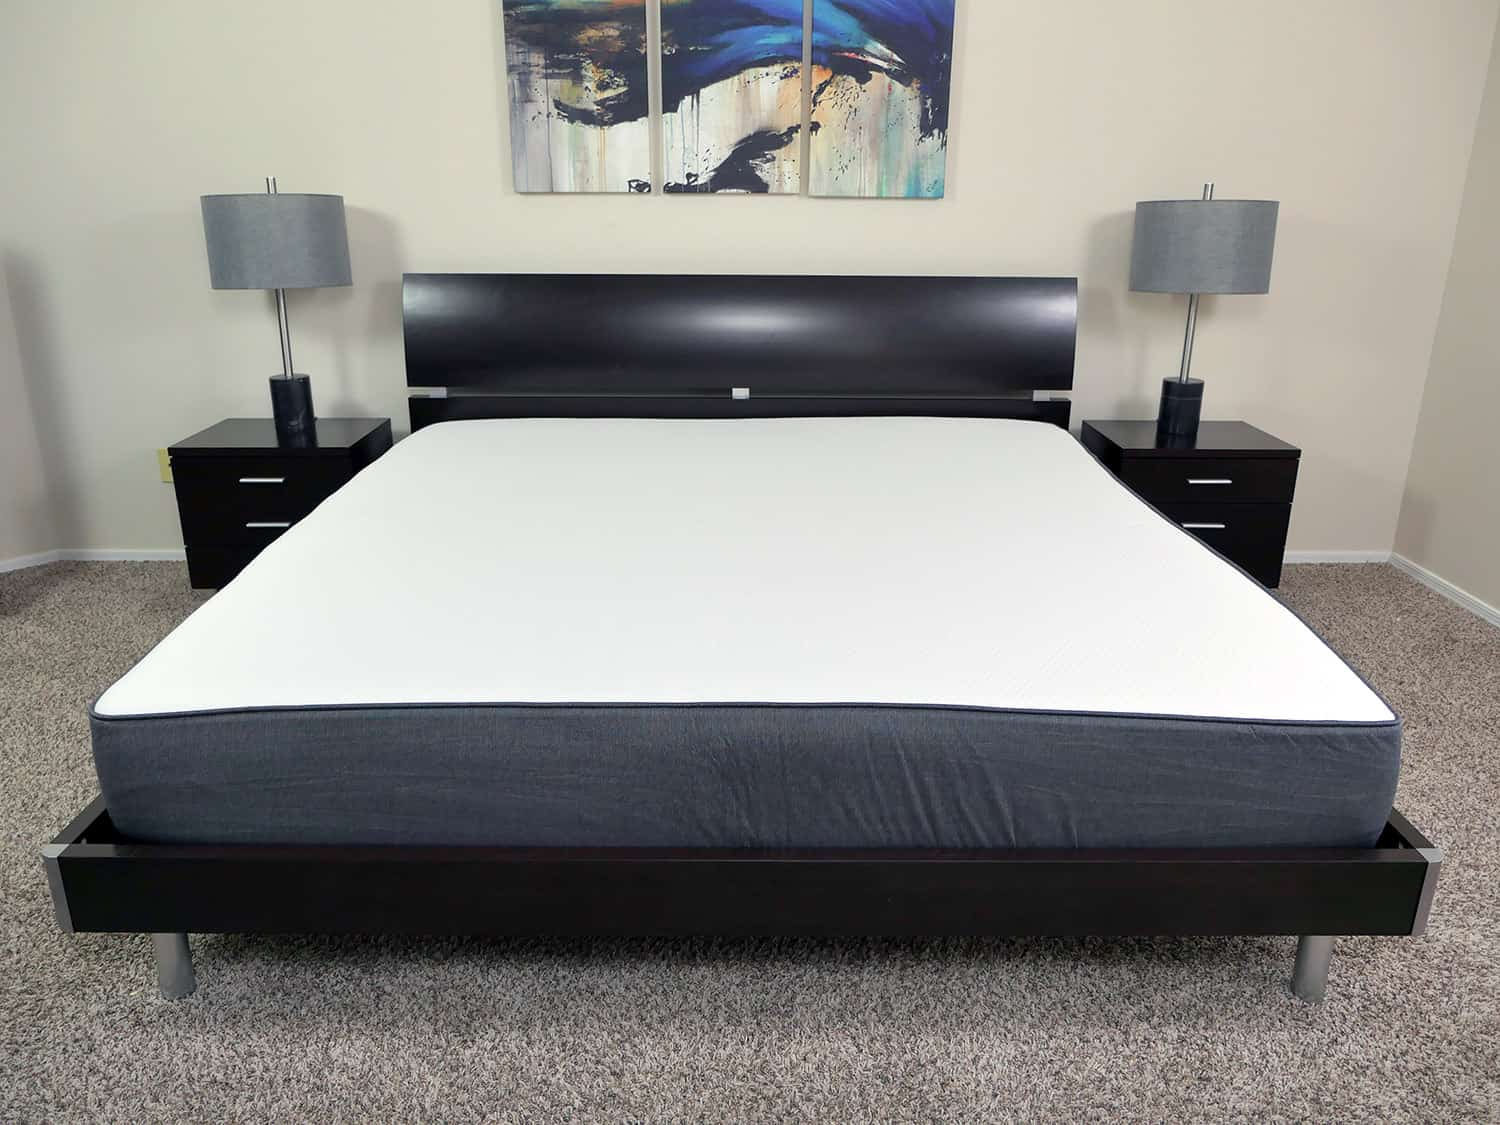 Casper mattress review sleepopolis for Brooklyn bedding vs casper